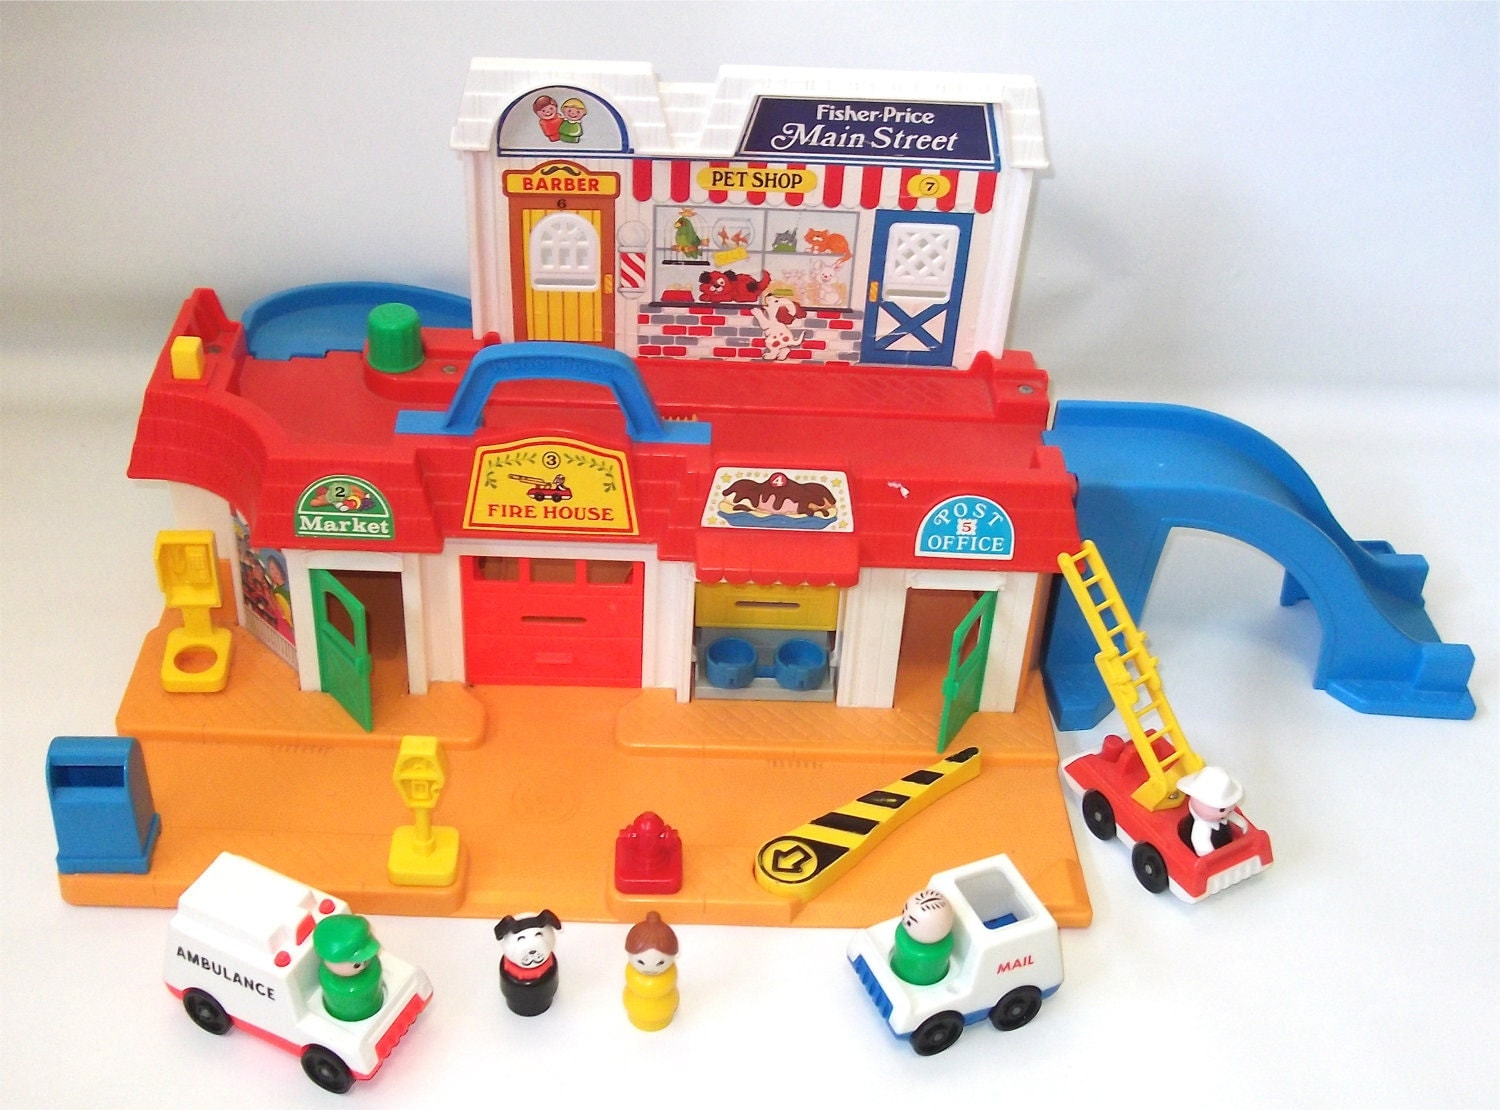 Vintage Fisher Price Play Family Main Street Little People